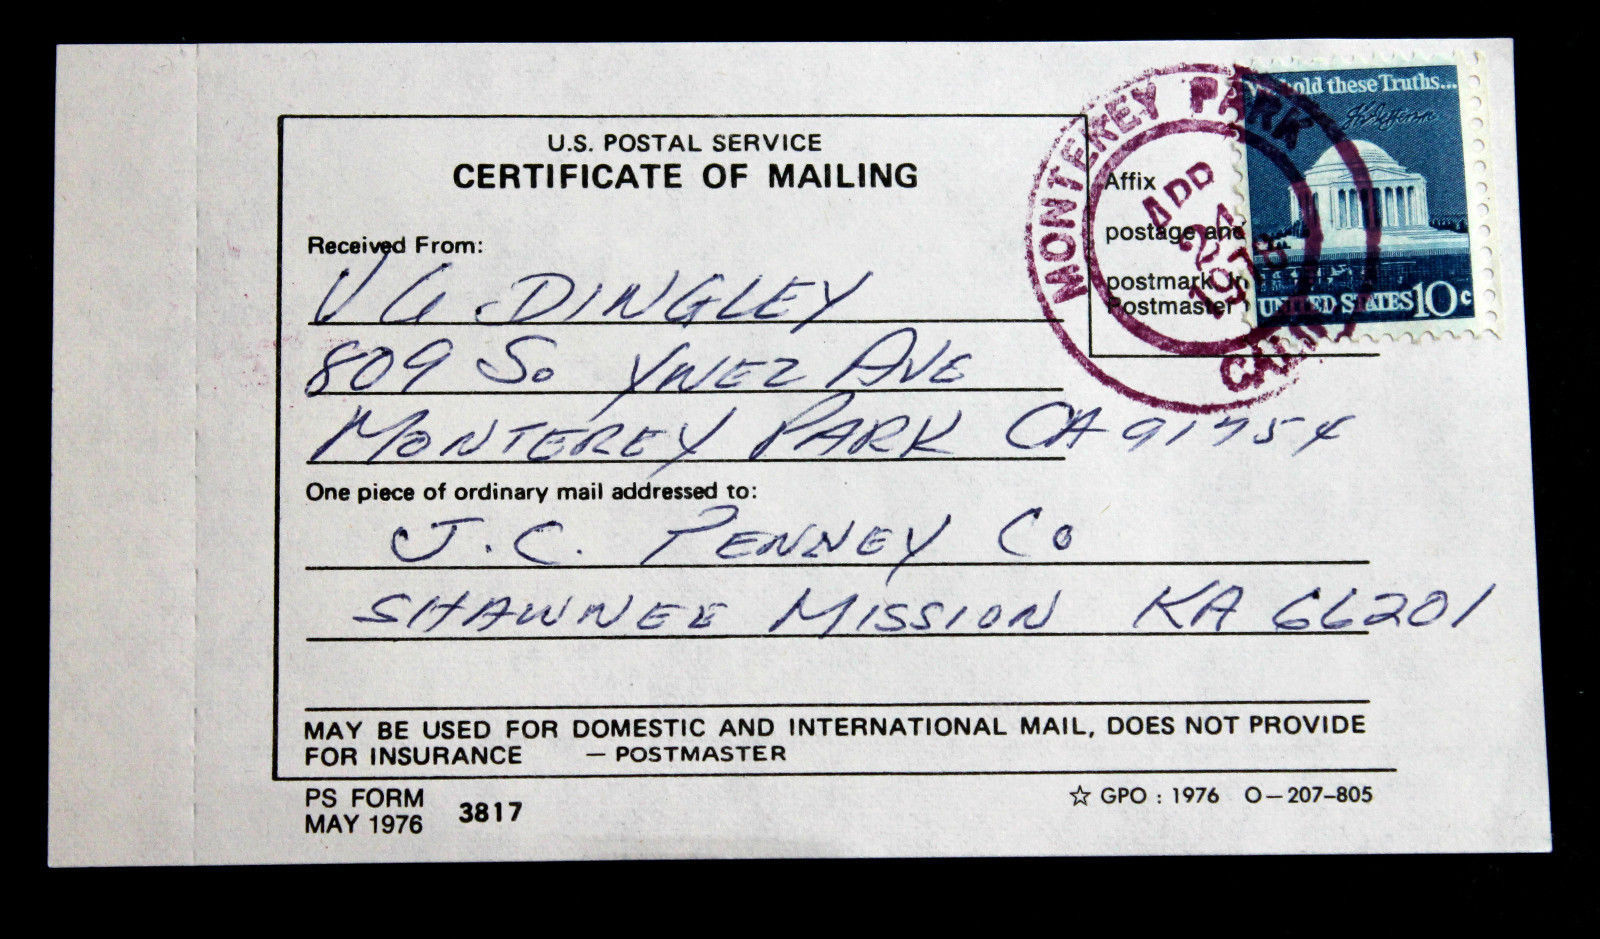 3817 certificate mailing form cds 1510 1978 tied sc purple booth